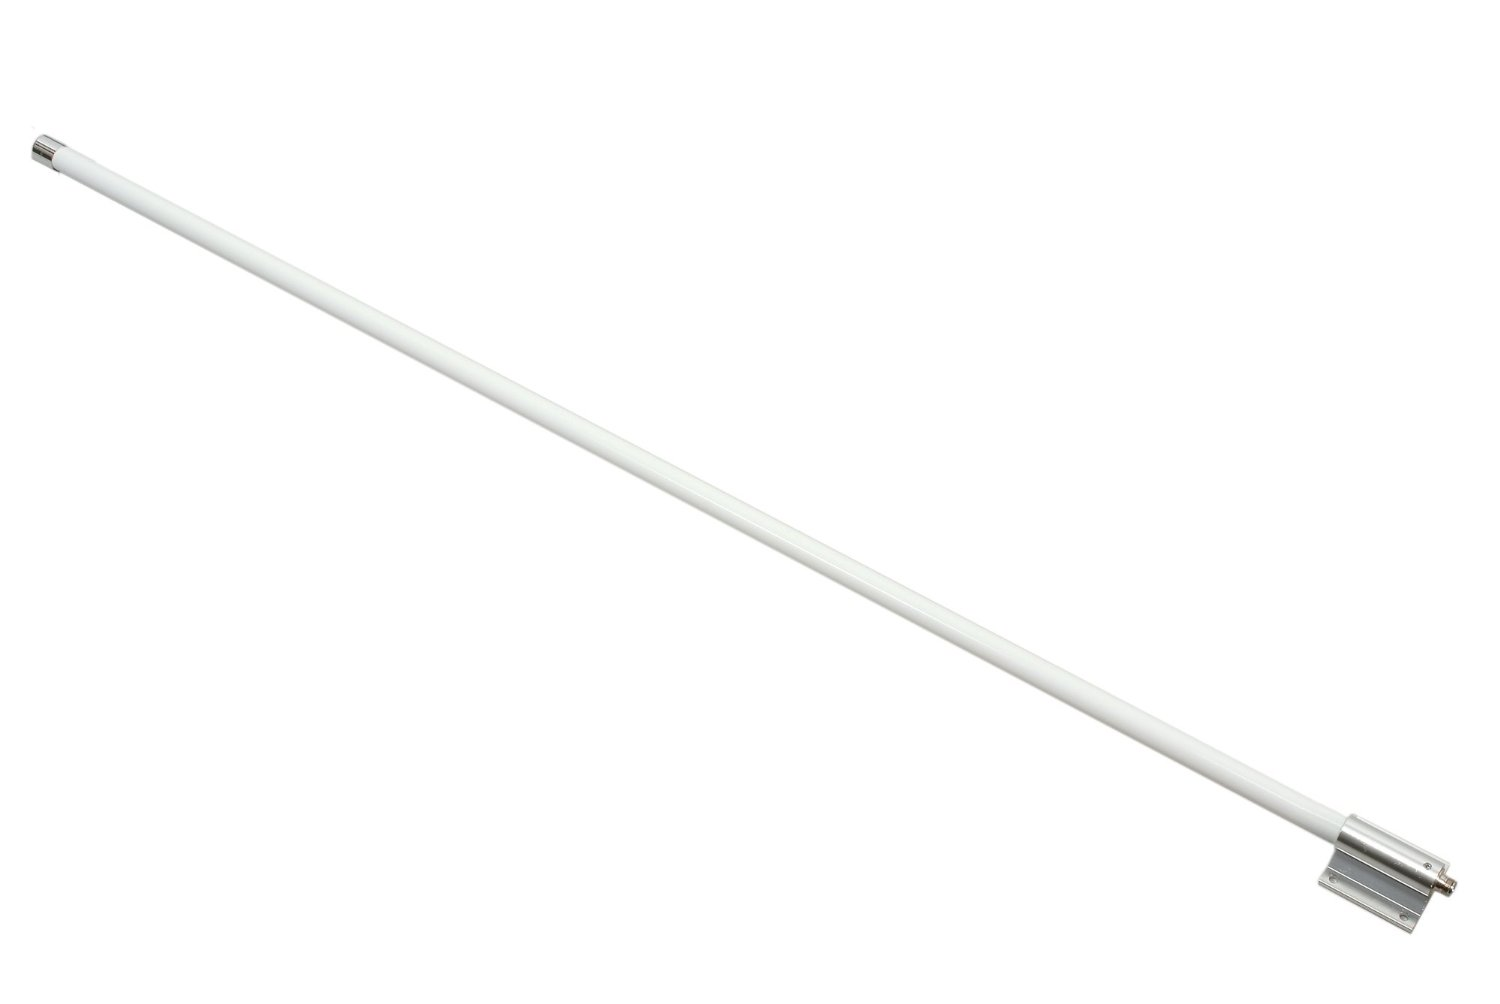 Alfa Hi-Gain Omni-Directional Outdoor 15dBi Antenna - 2.4/2.5GHz 4.8-Feet long Weatherproof antenna With N Female Connector